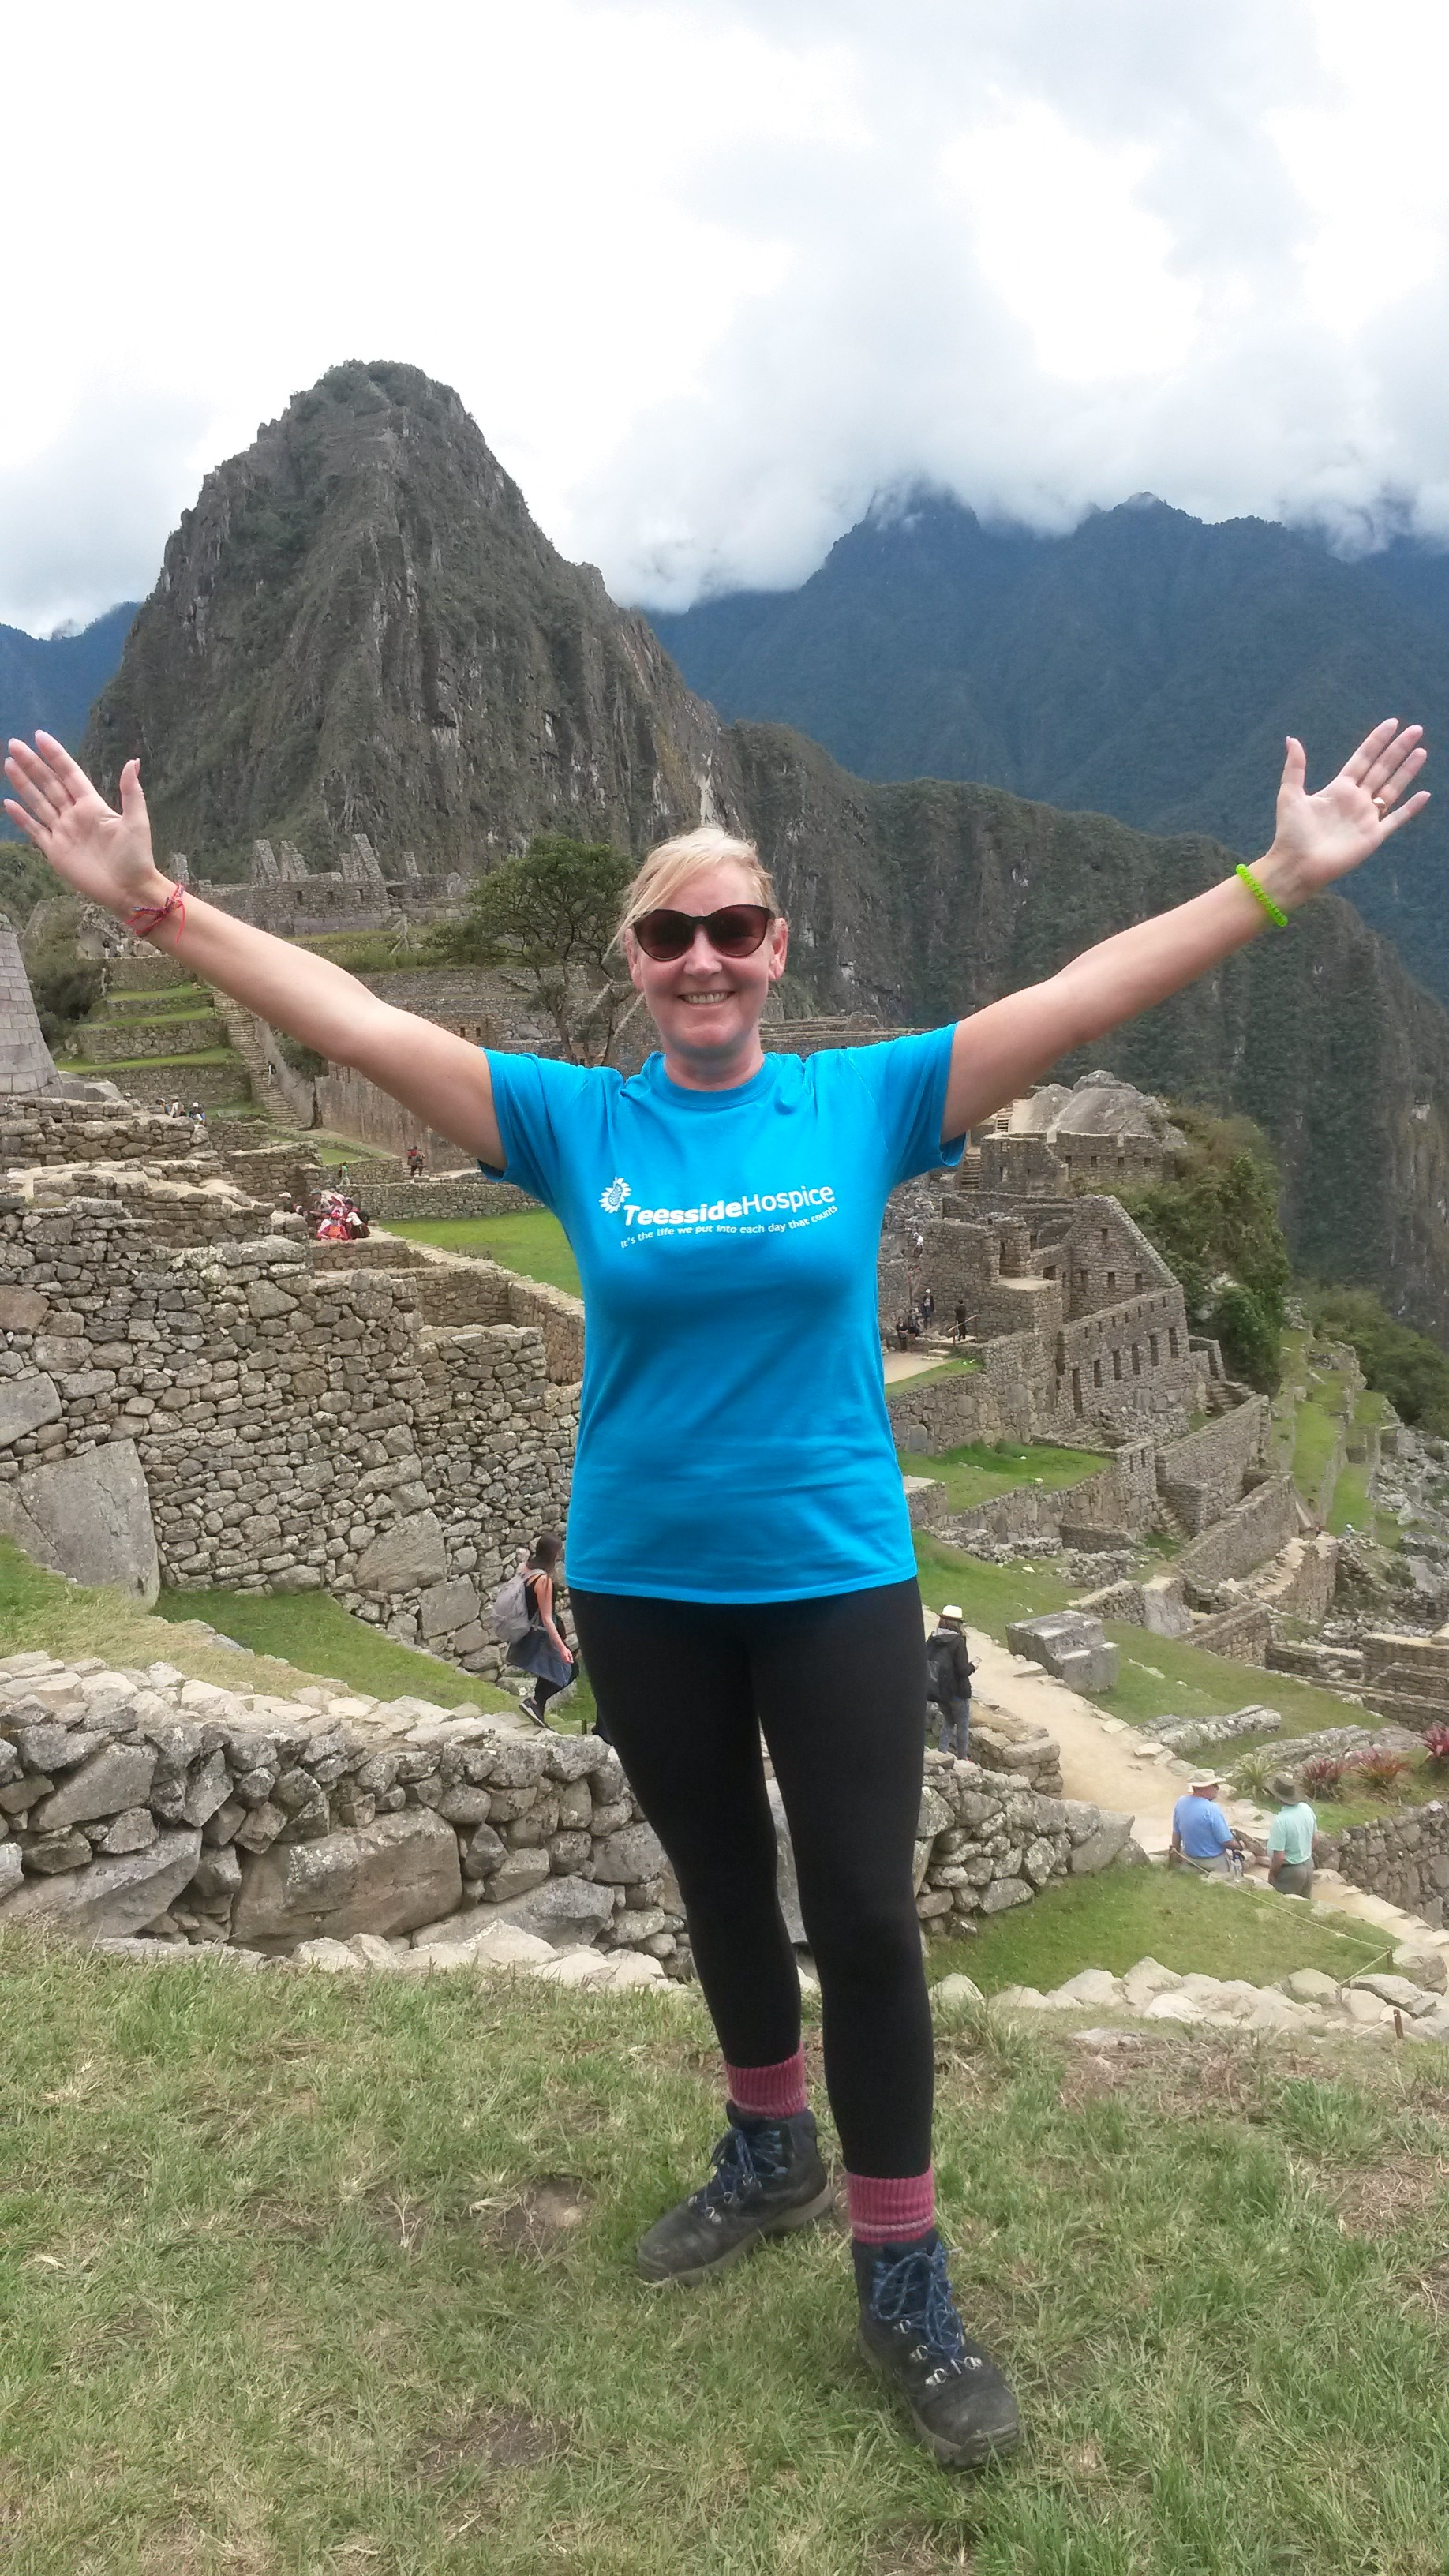 Julie Woodier victorious after completing her Machu Picchu trek.